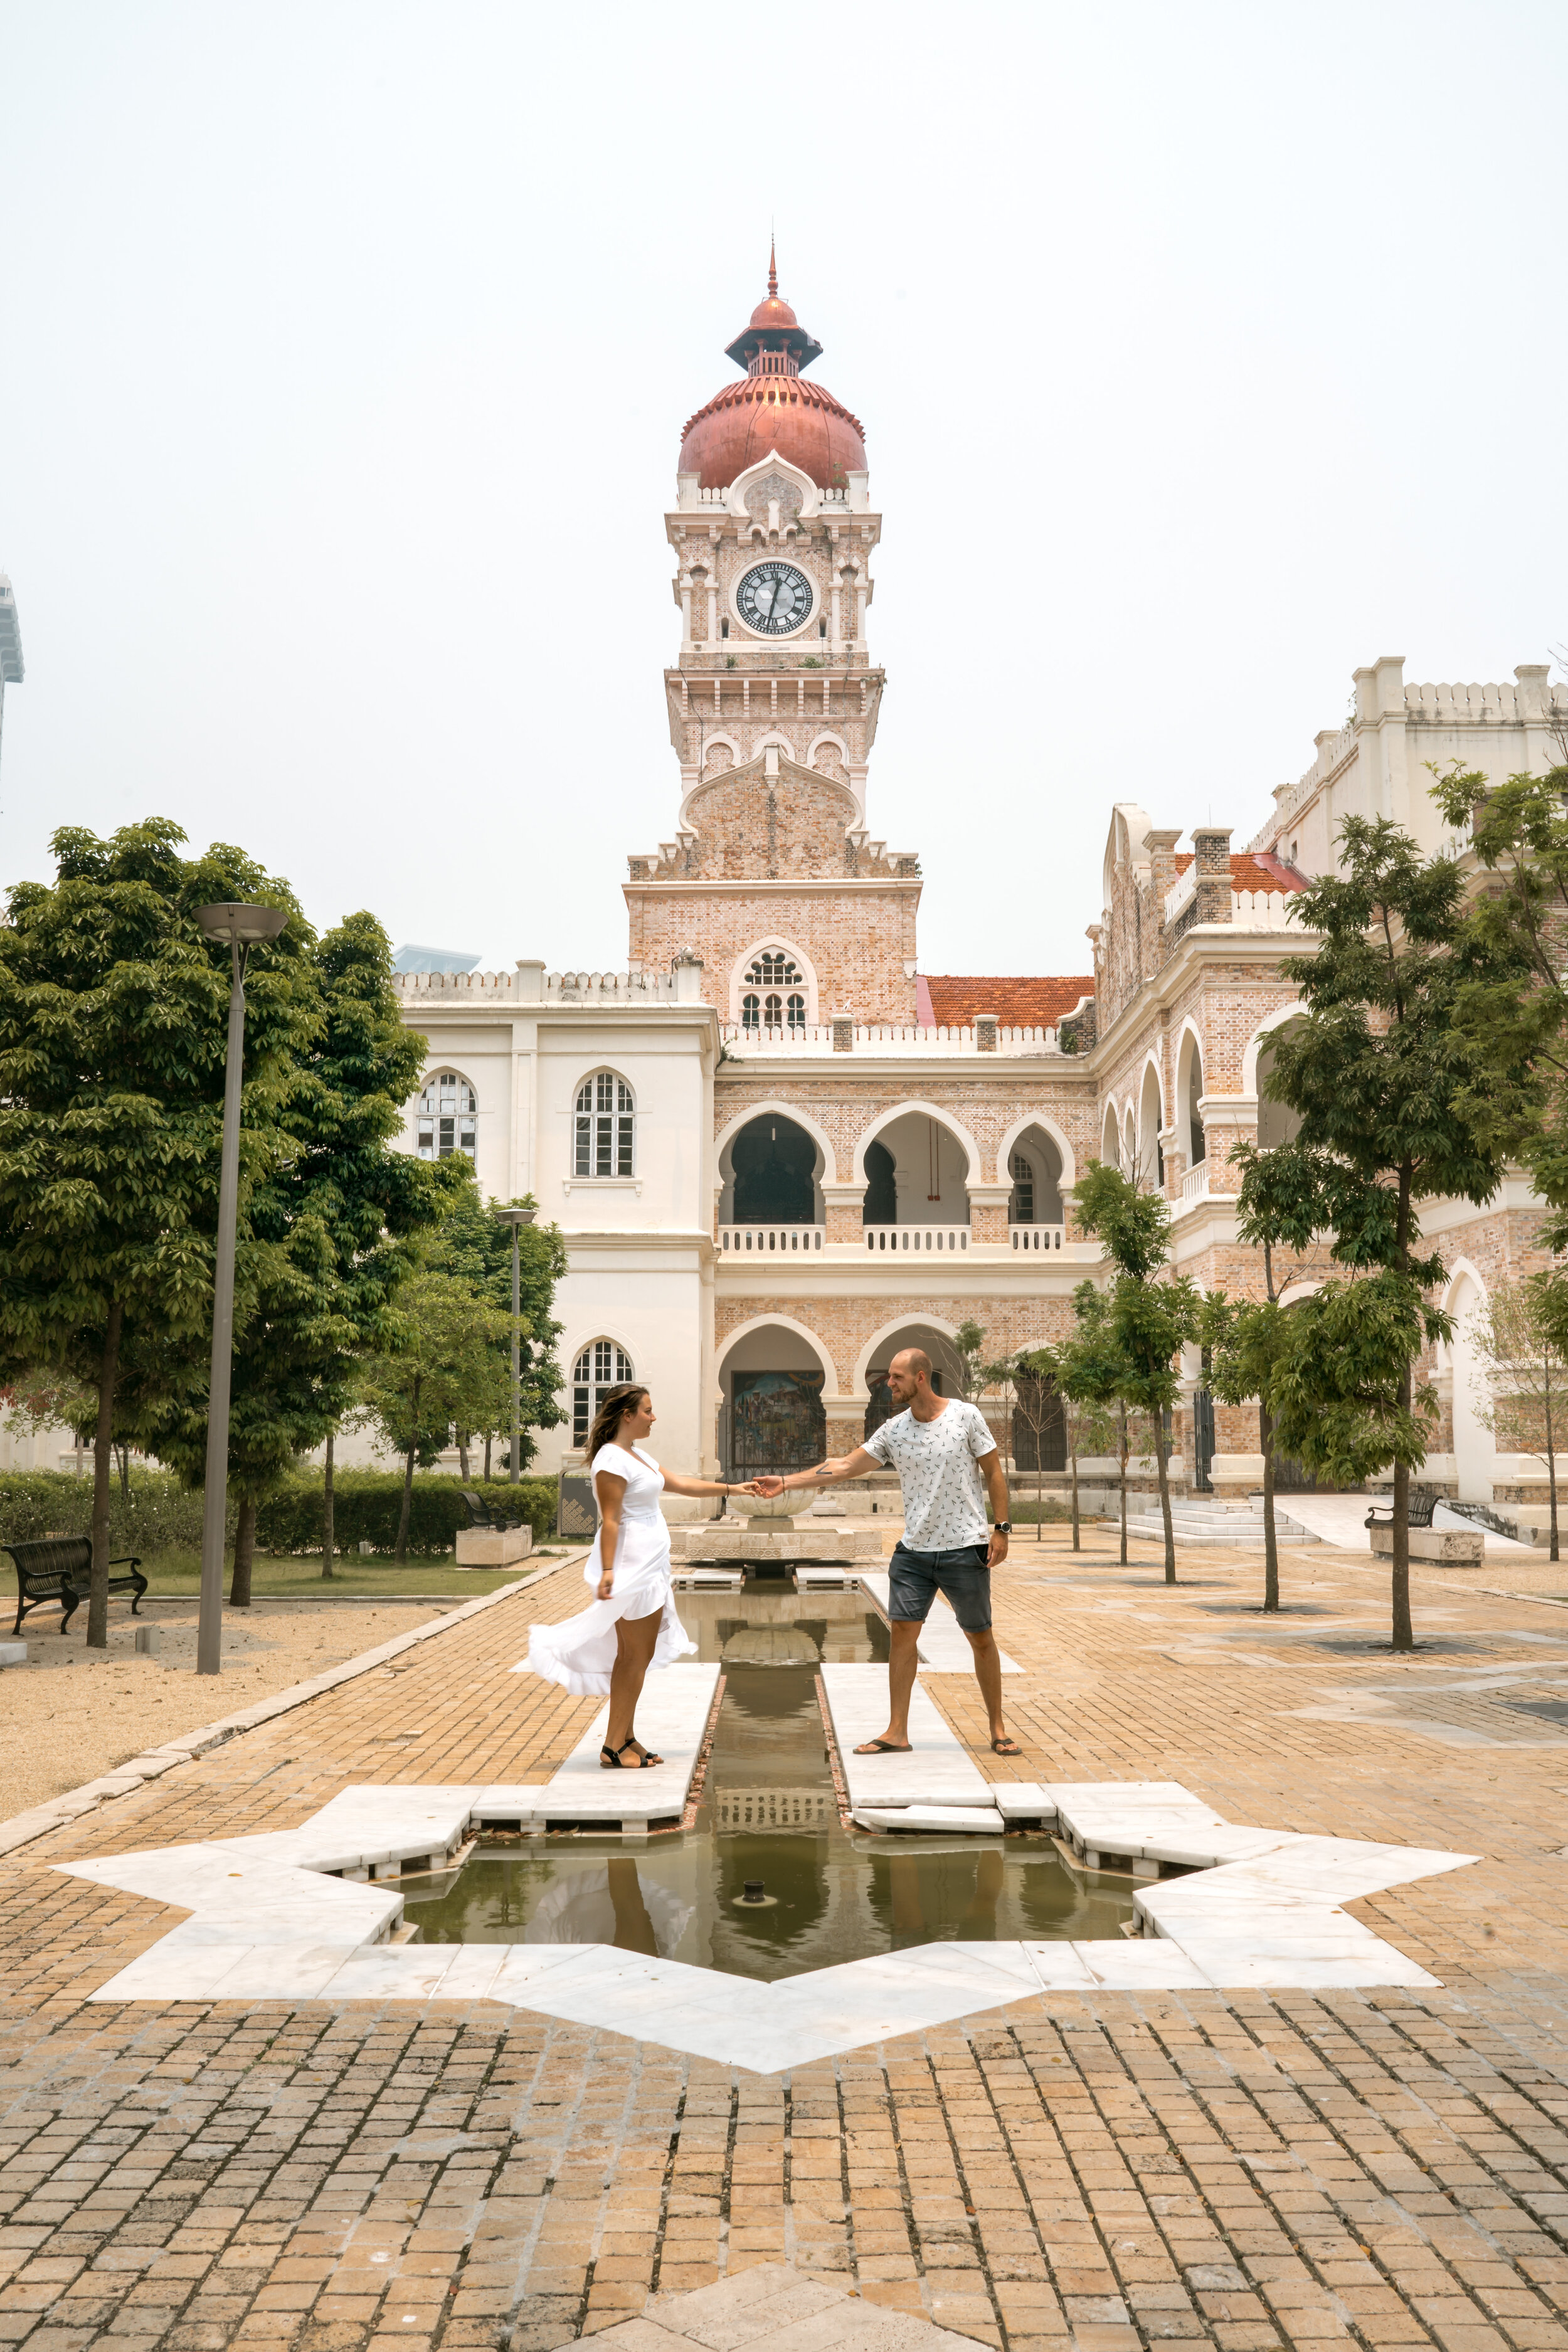 Sultan Abdul Samad Back Best Things To Do Kuala Lumpur